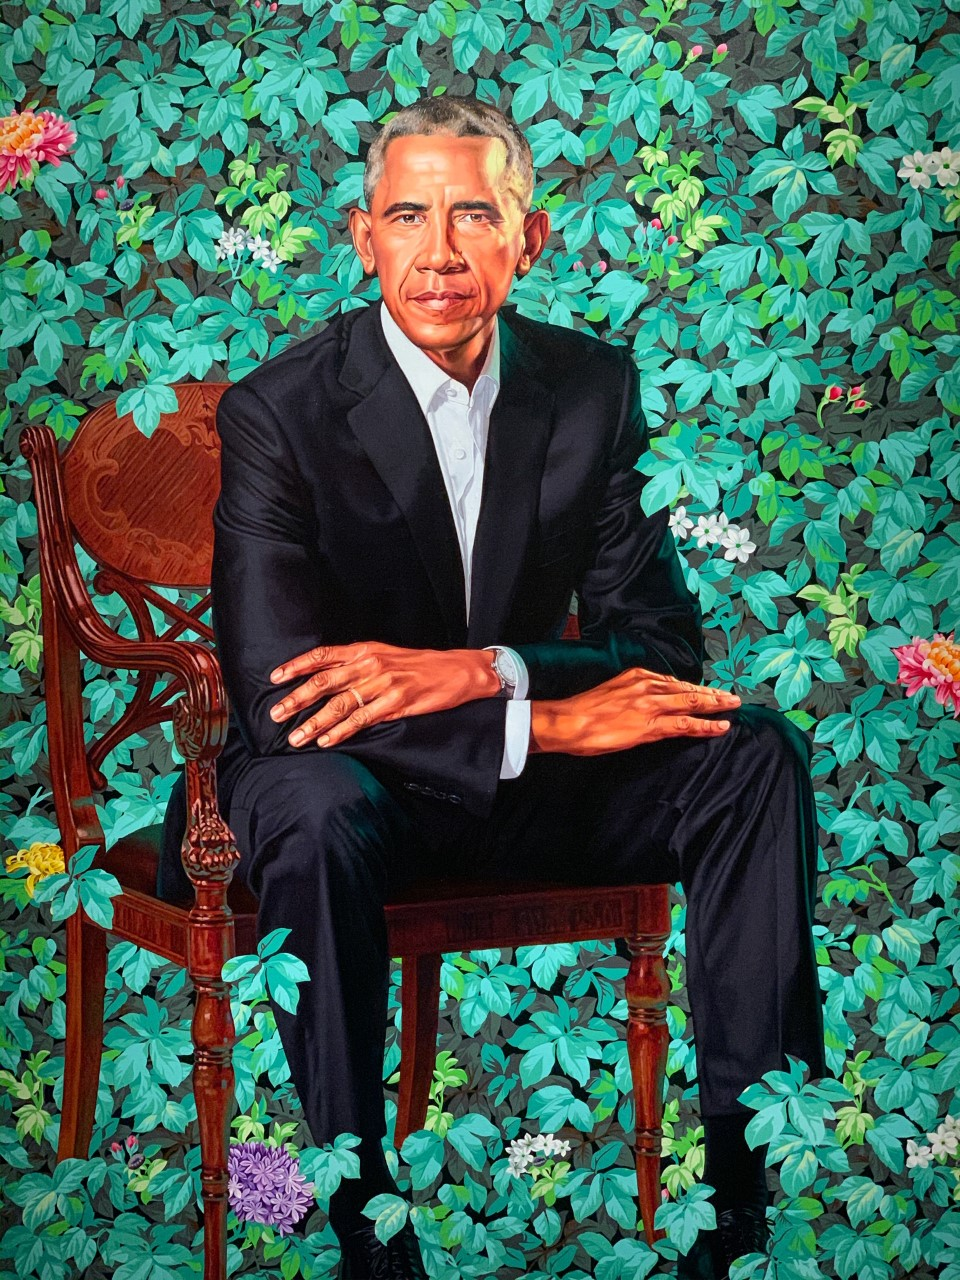 Obama Portrait in National Portrait Gallery in Washington, D.C.